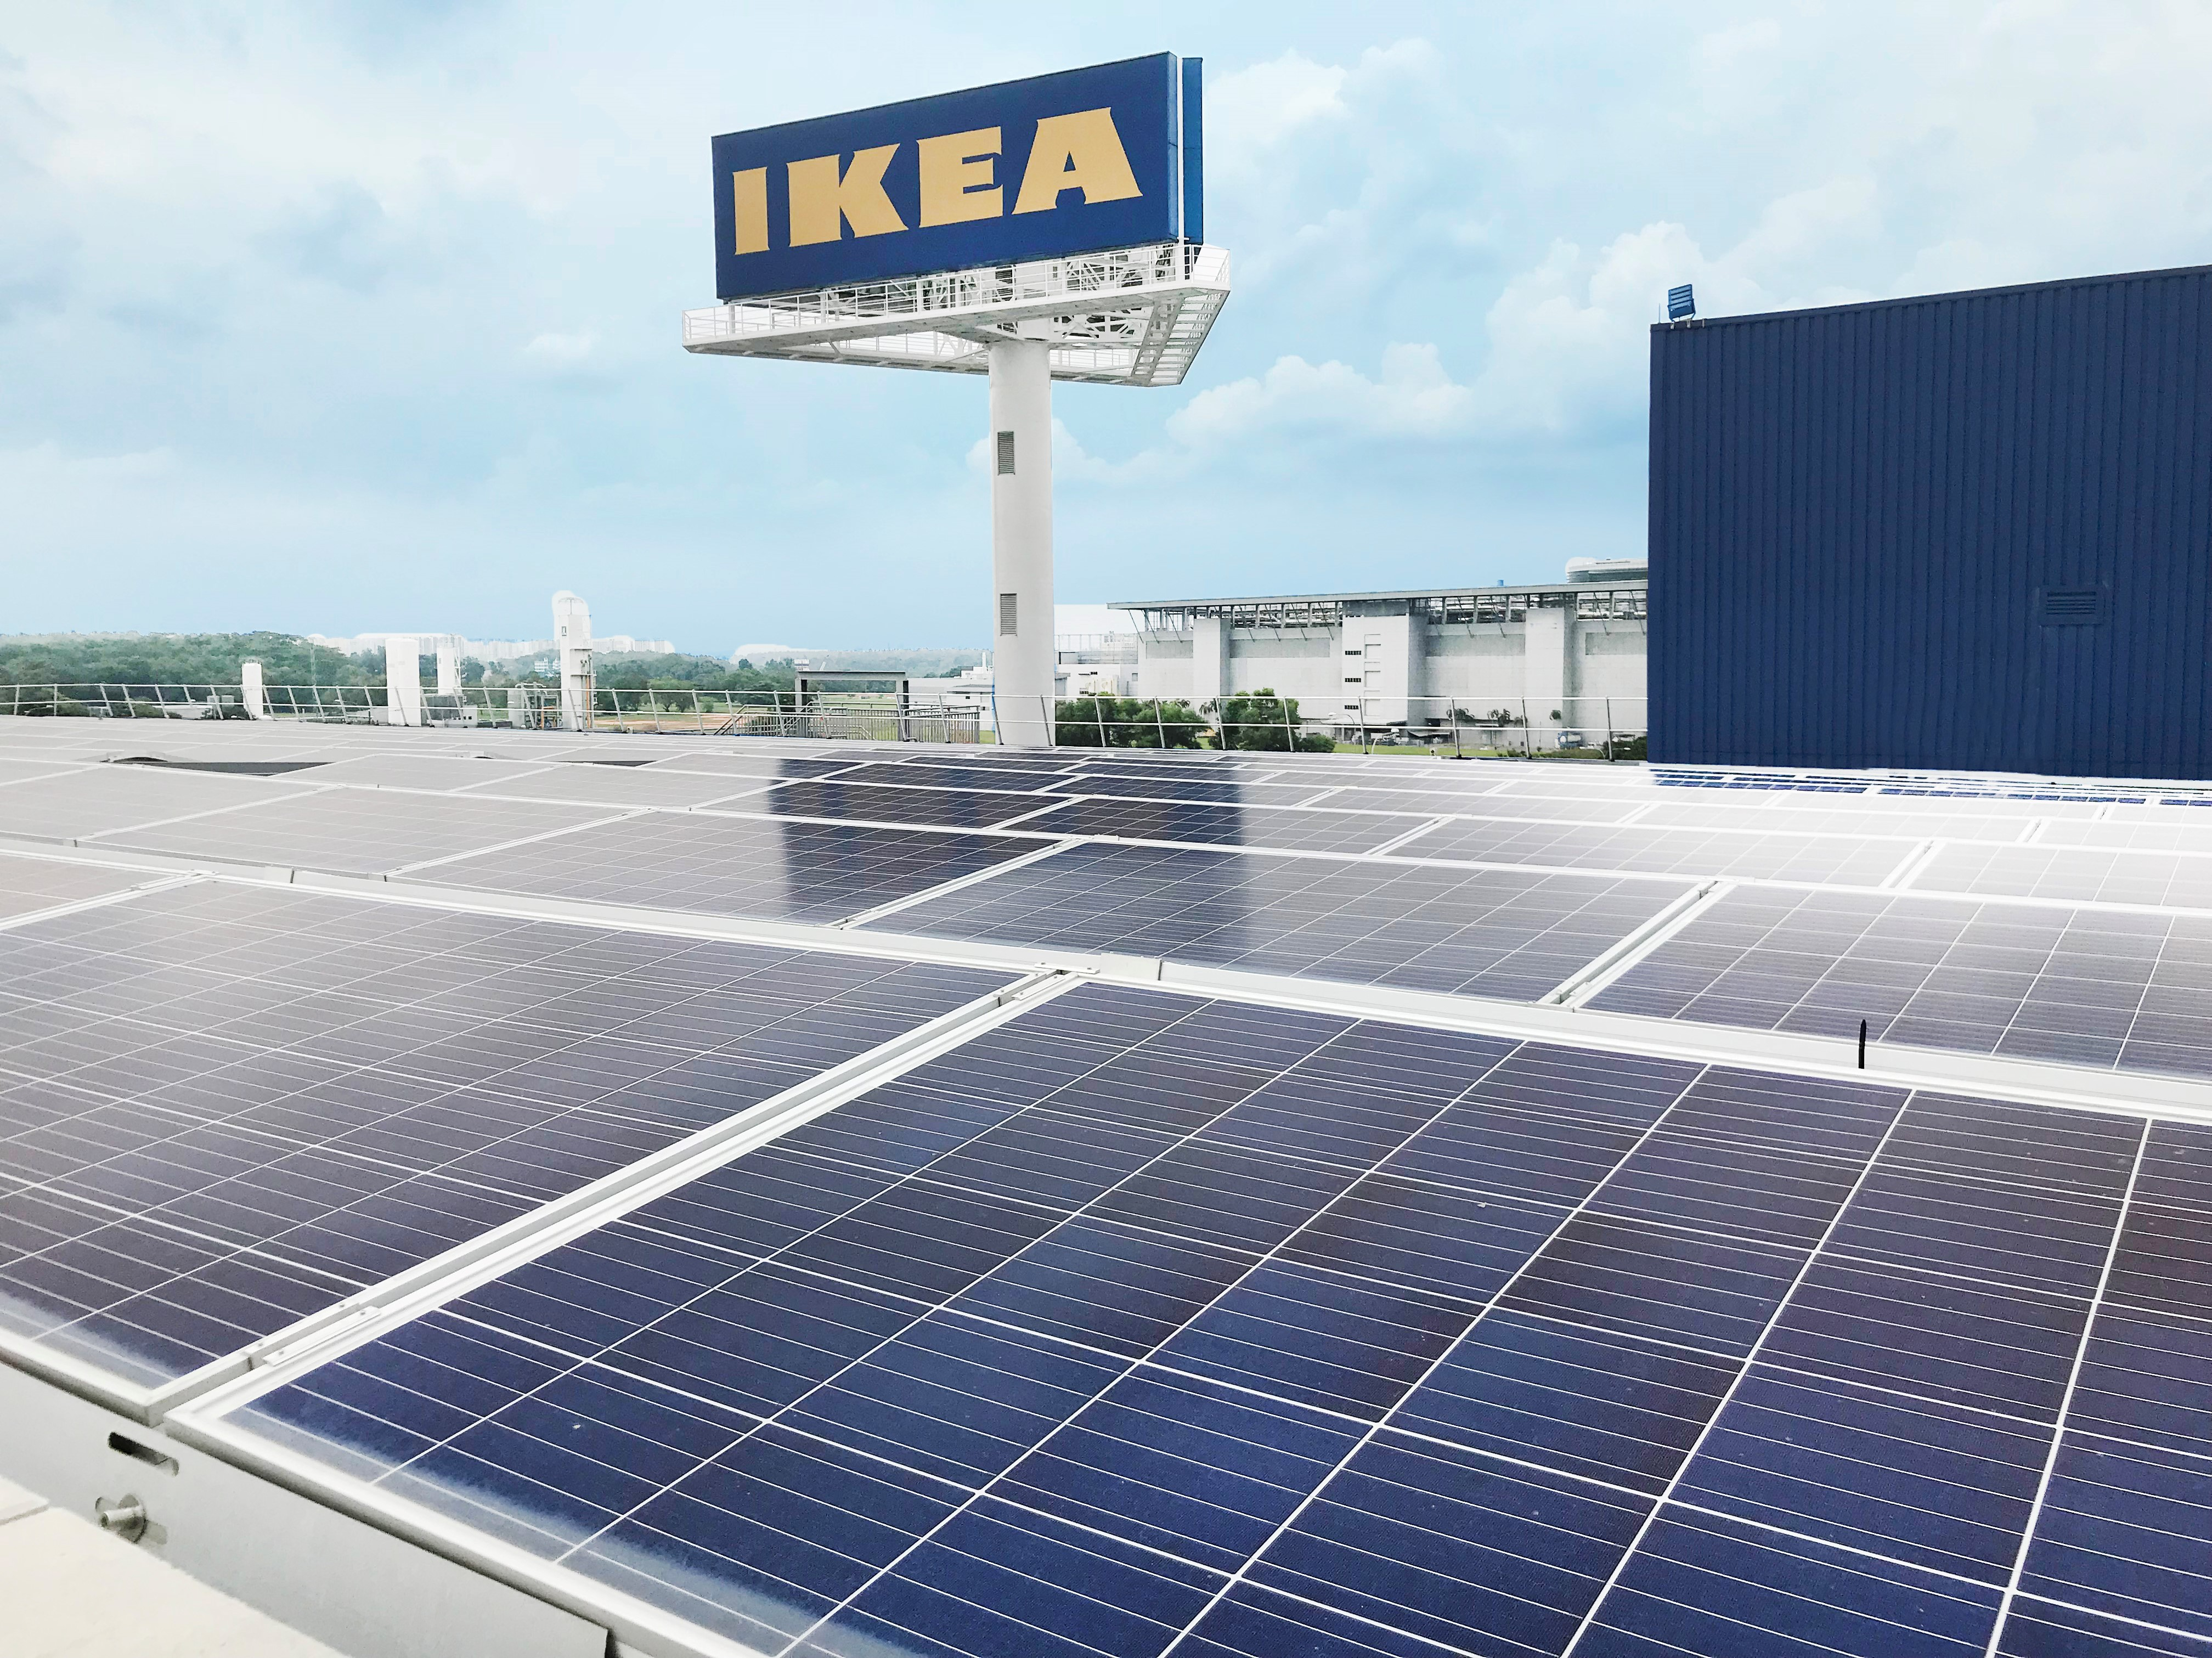 Neon Ikea Ikea About To Harness More Solar Energy Using Abb Smart Inverters